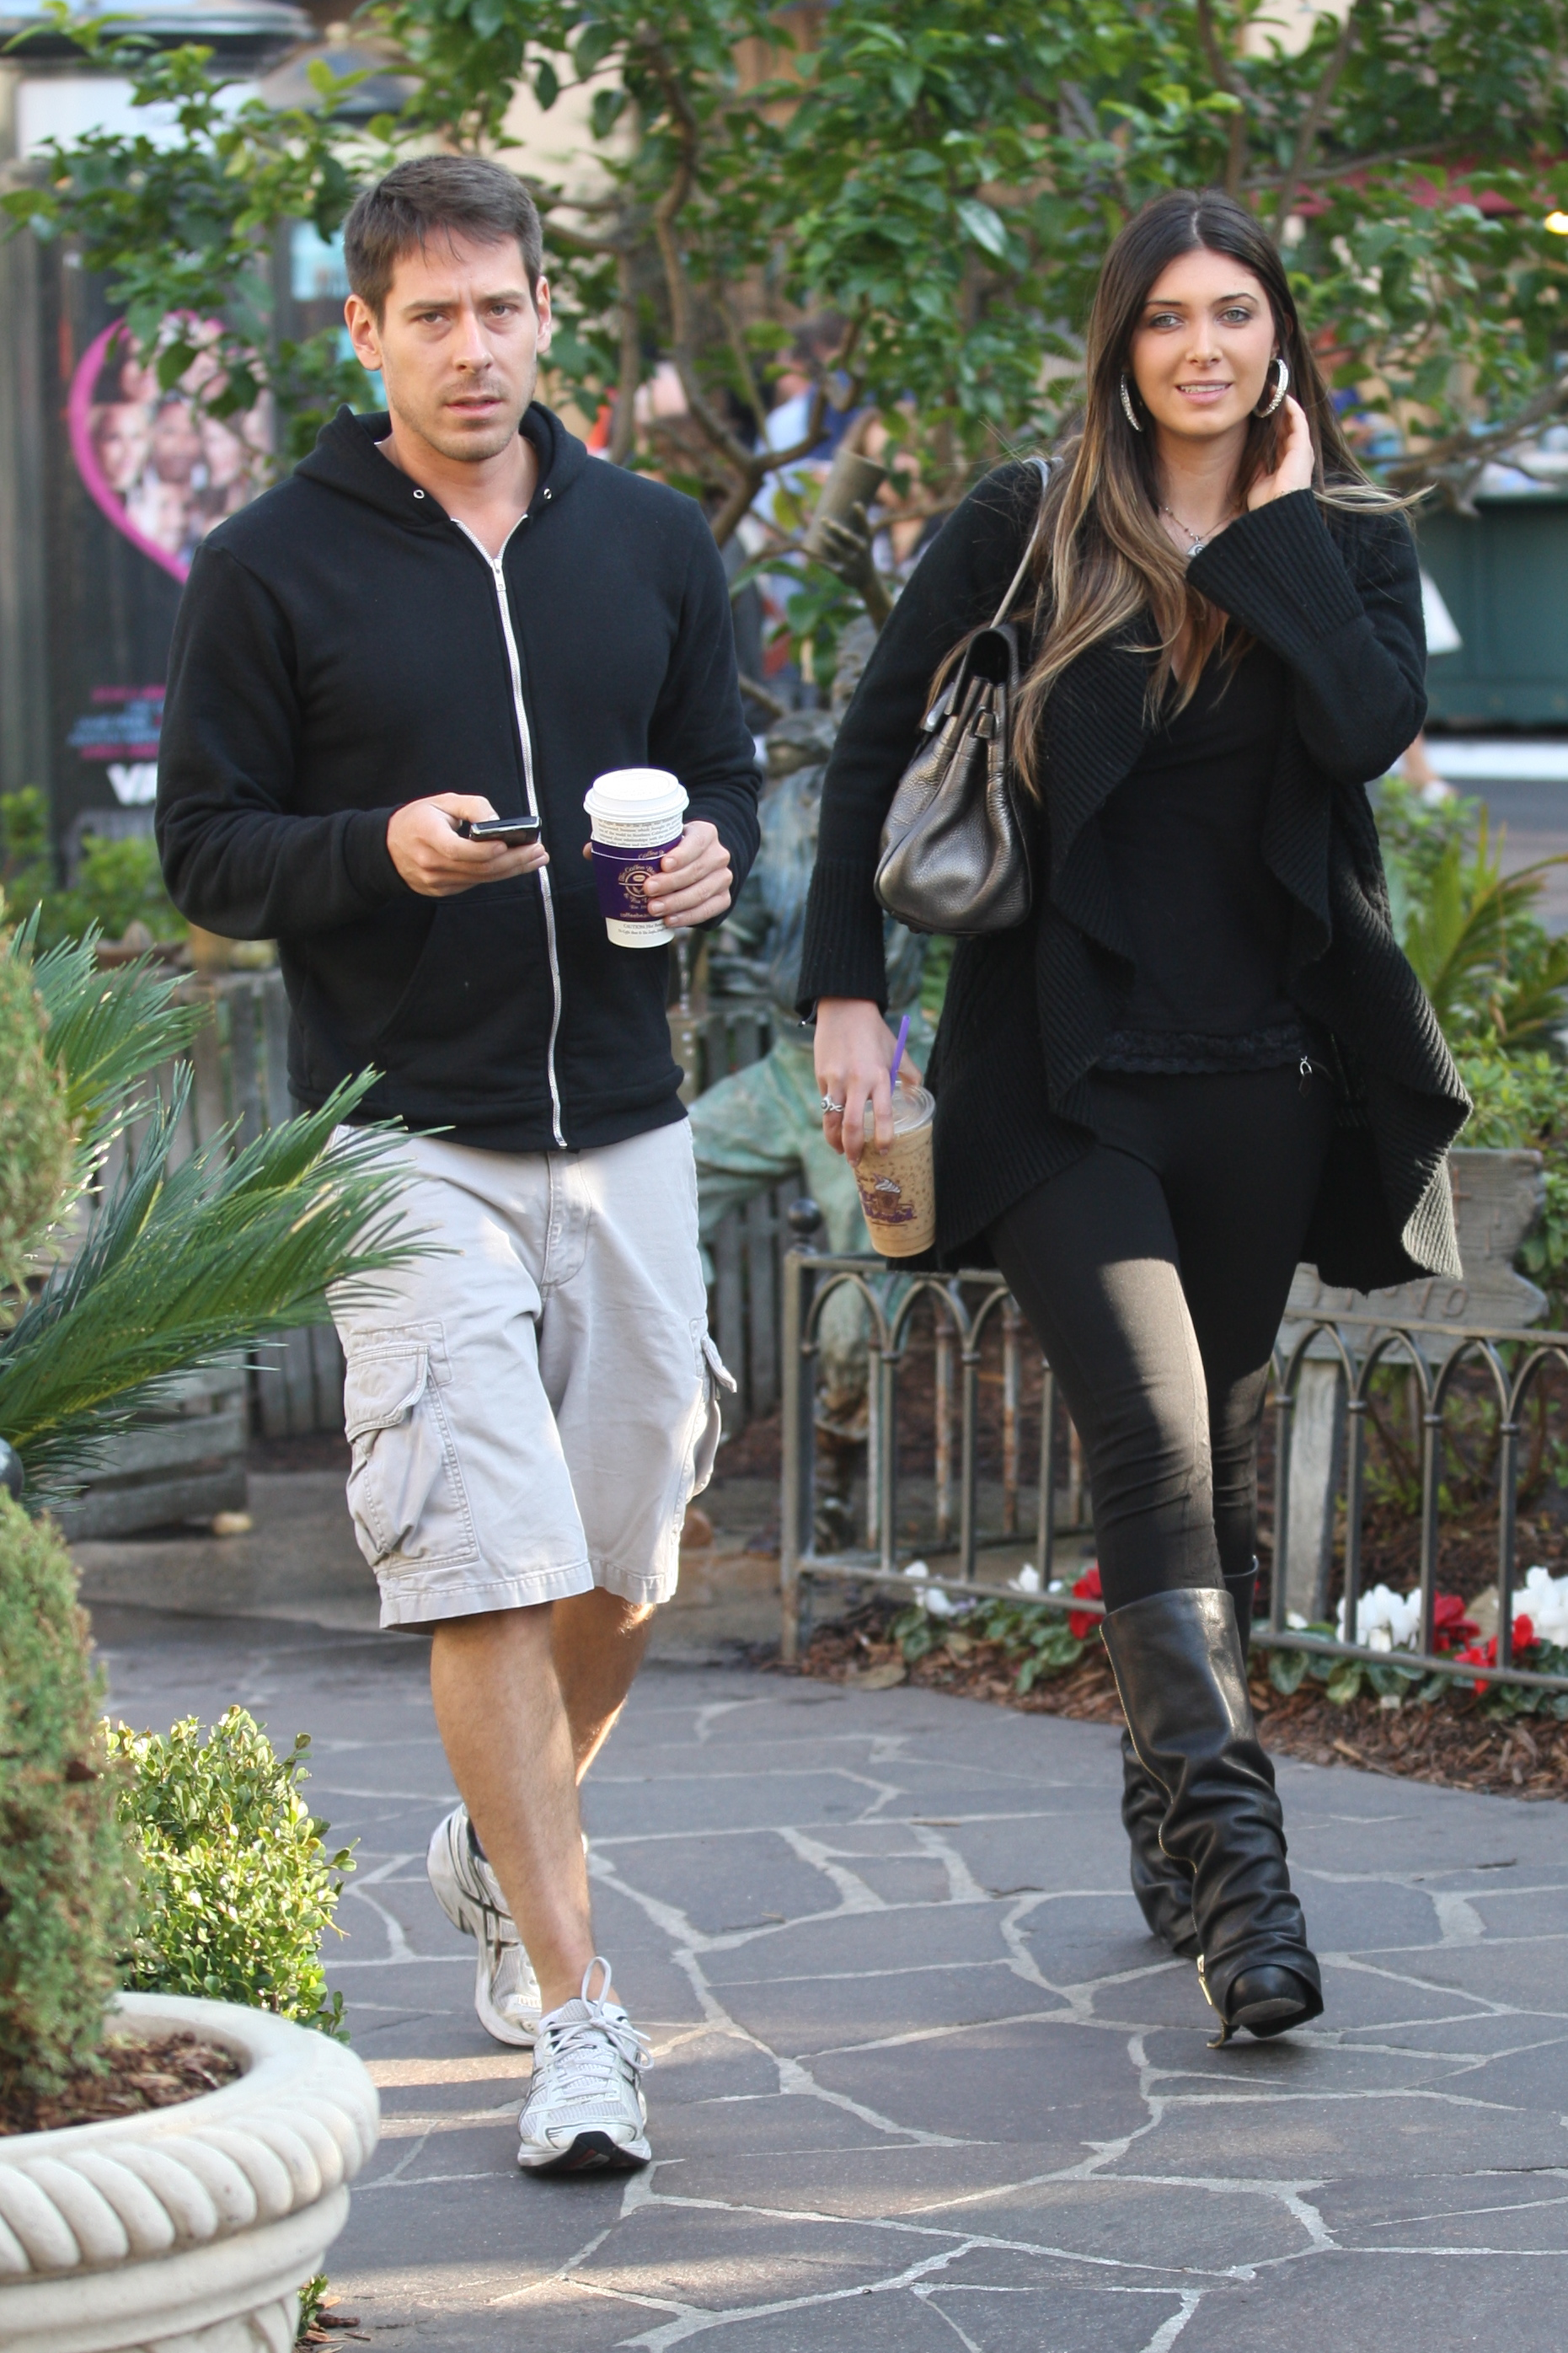 24894_celebrity-paradise.com-The_Elder-Brittny_Gastineau_2010-01-31_-_out_shopping_in_Hollywood_231_122_435lo.jpg